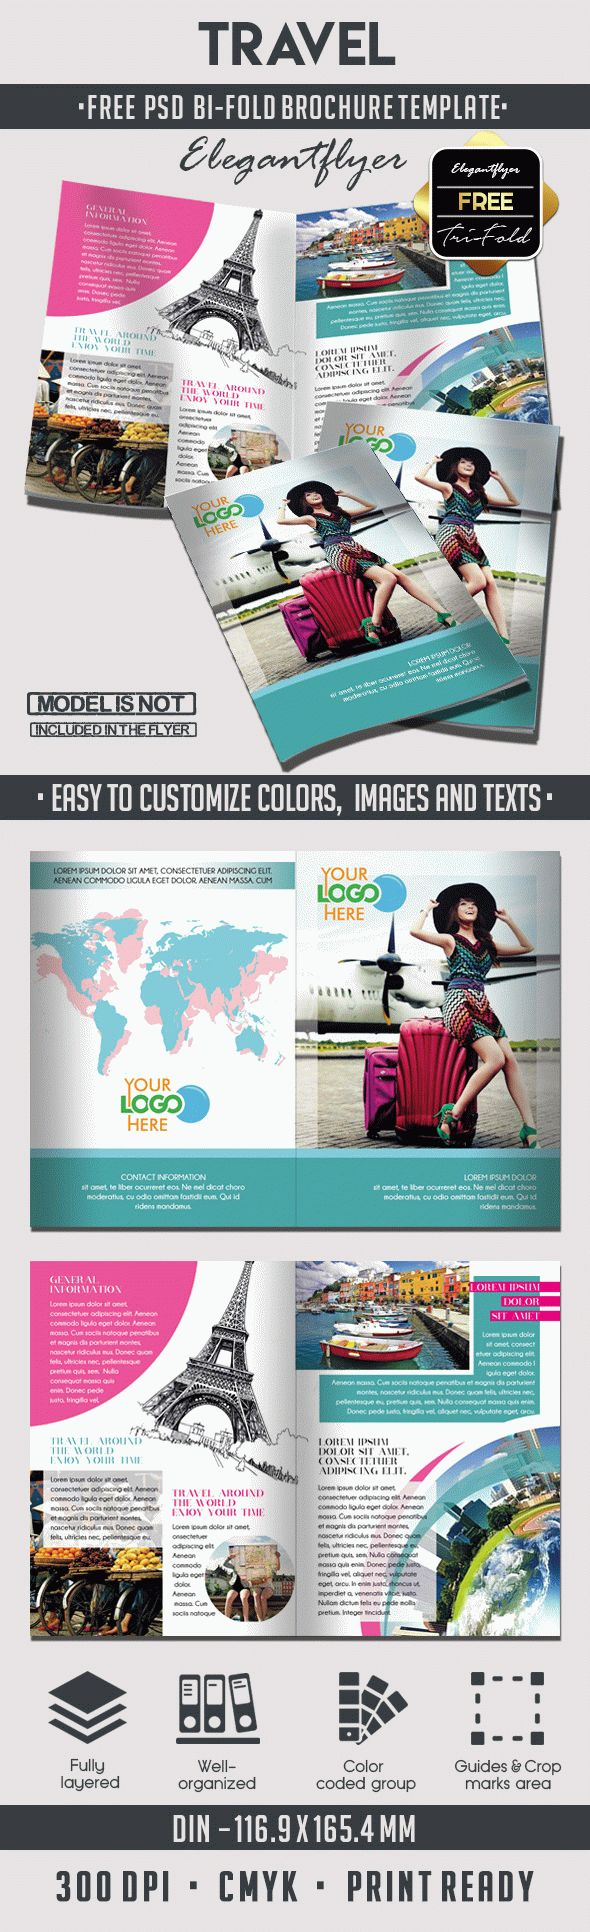 3d brochure templates psd - travel free bi fold psd brochure template by elegantflyer